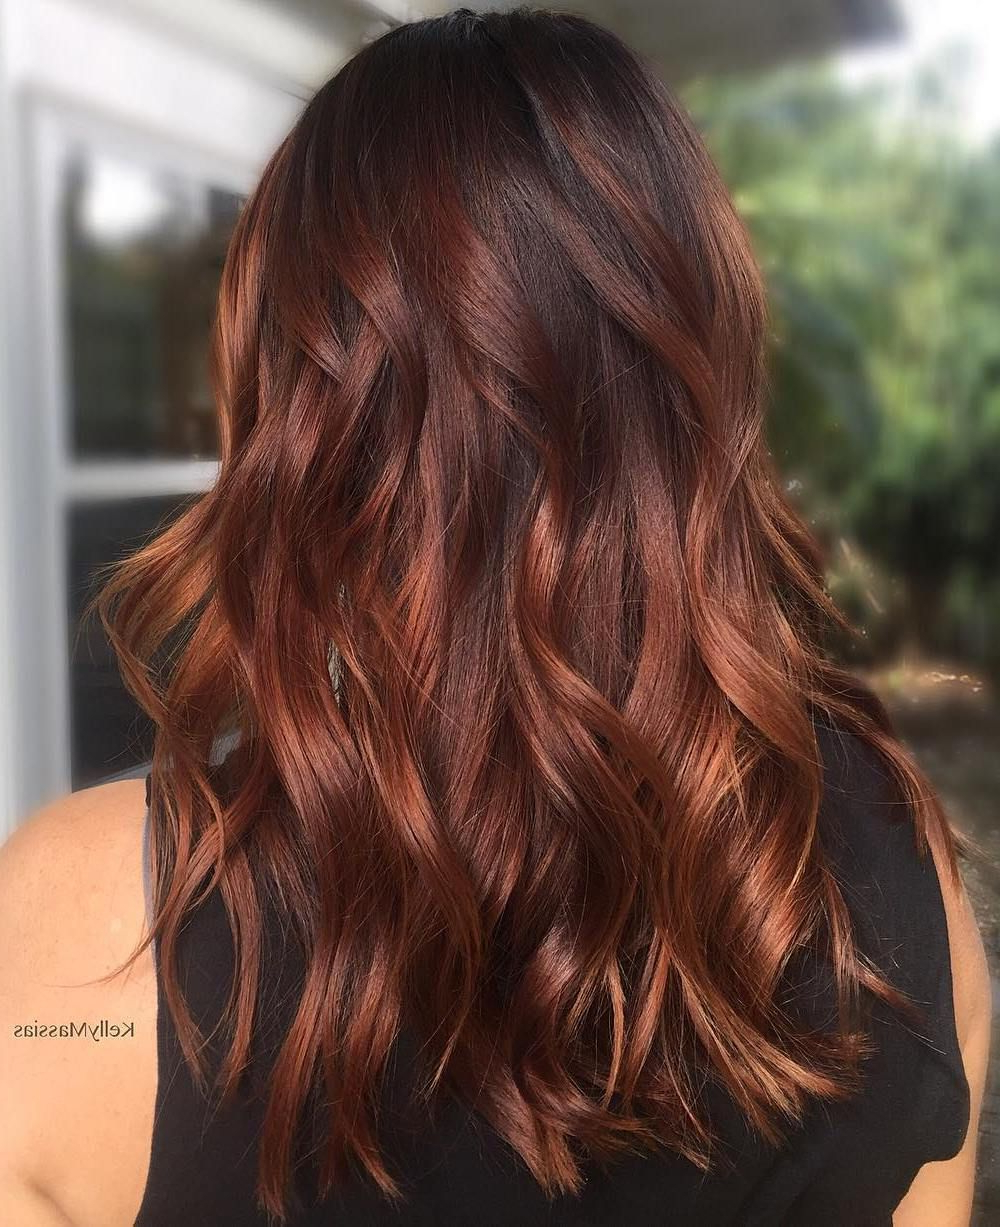 70 Flattering Balayage Hair Color Ideas For 2020   Hair Regarding Dimensional Dark Roots To Red Ends Balayage Hairstyles (View 2 of 20)